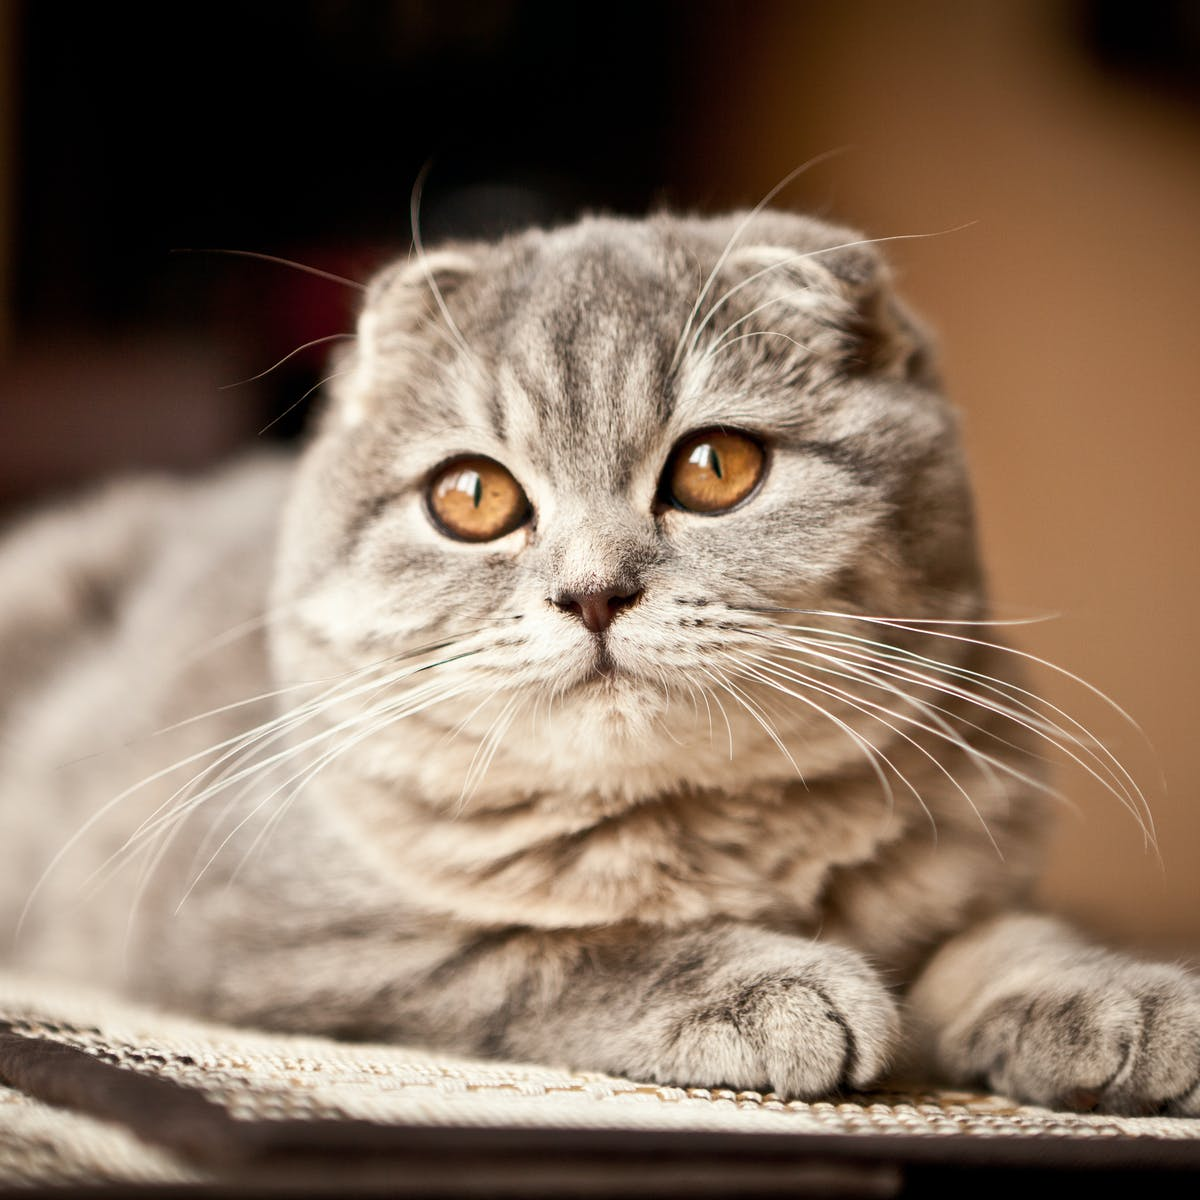 Cats With Round Faces And Big Eyes Might Be Cute But You Can T Tell How They Re Feeling New Research